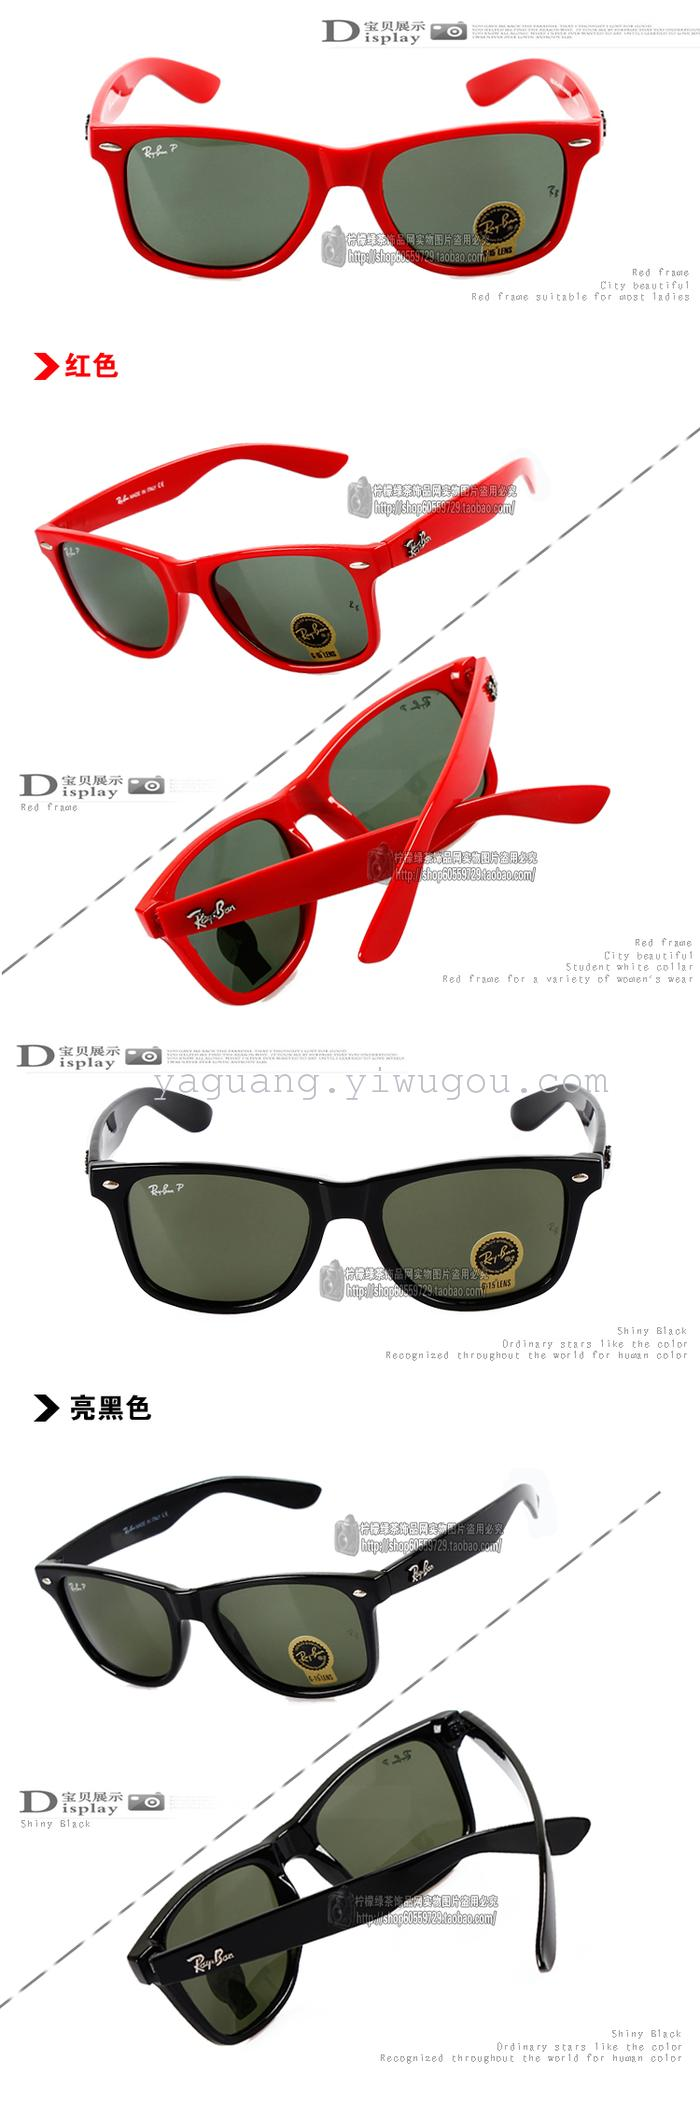 ray ban sunglasses for women  sunglasses ray-ban sunglasses